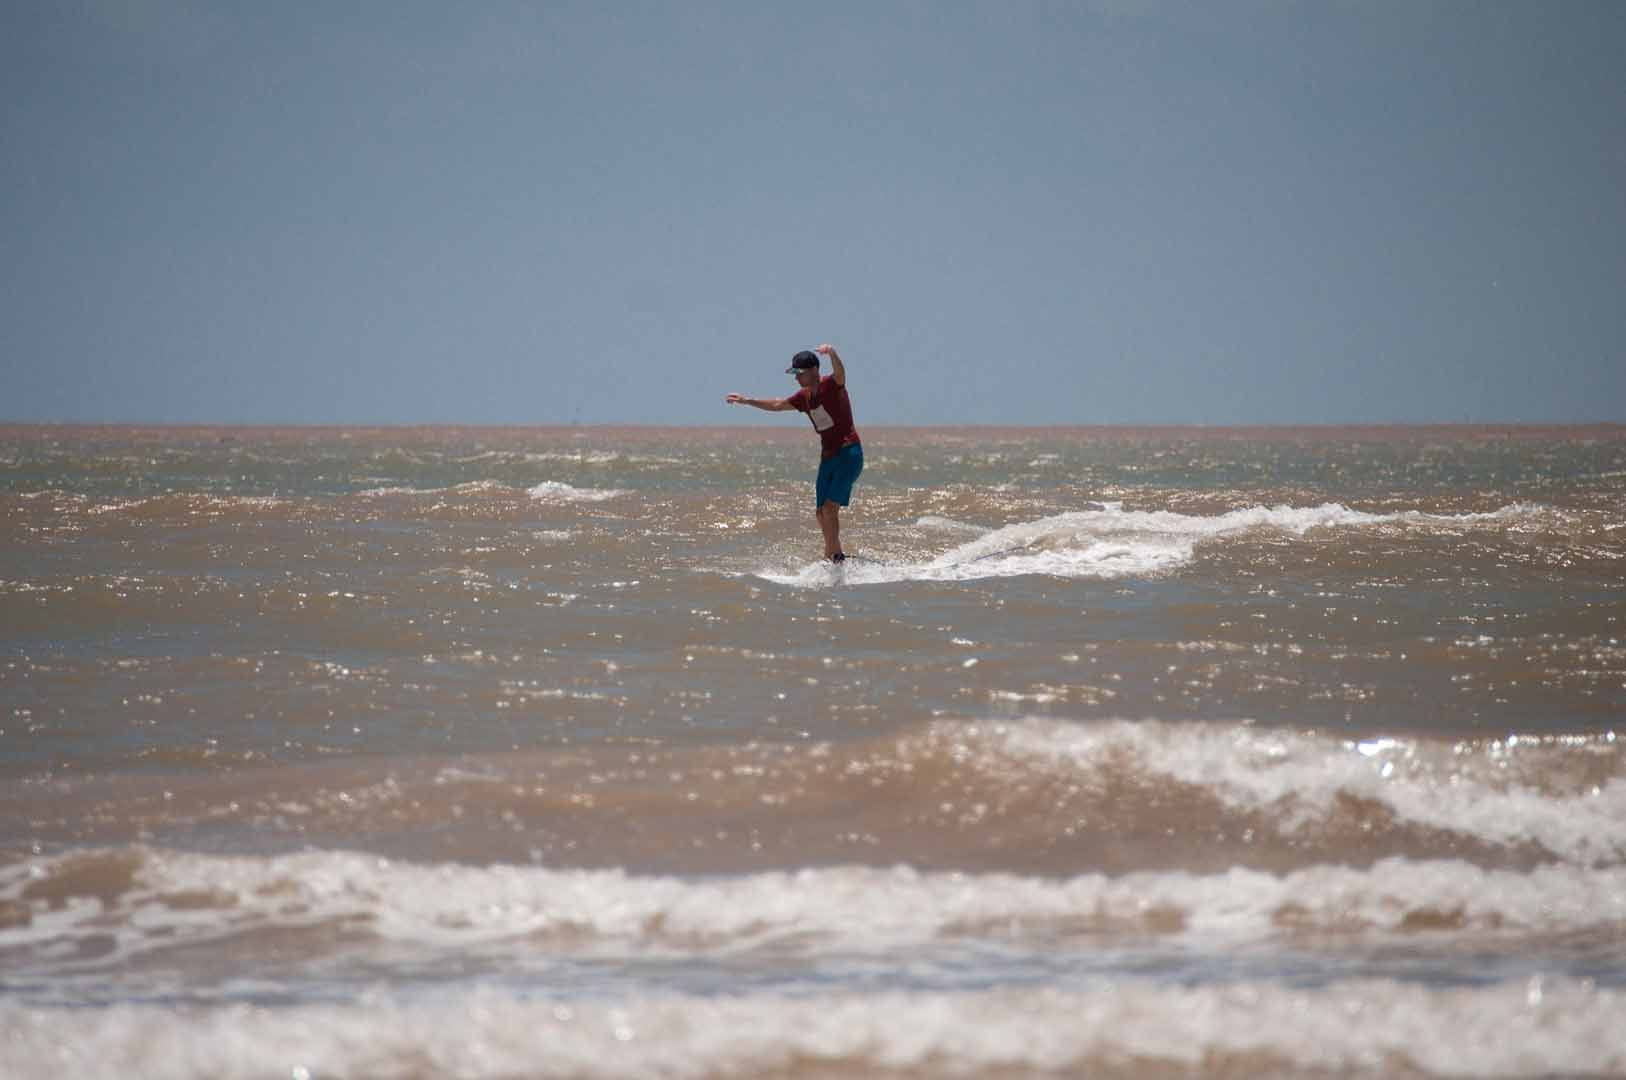 SurfsideLateJune_20150627_182